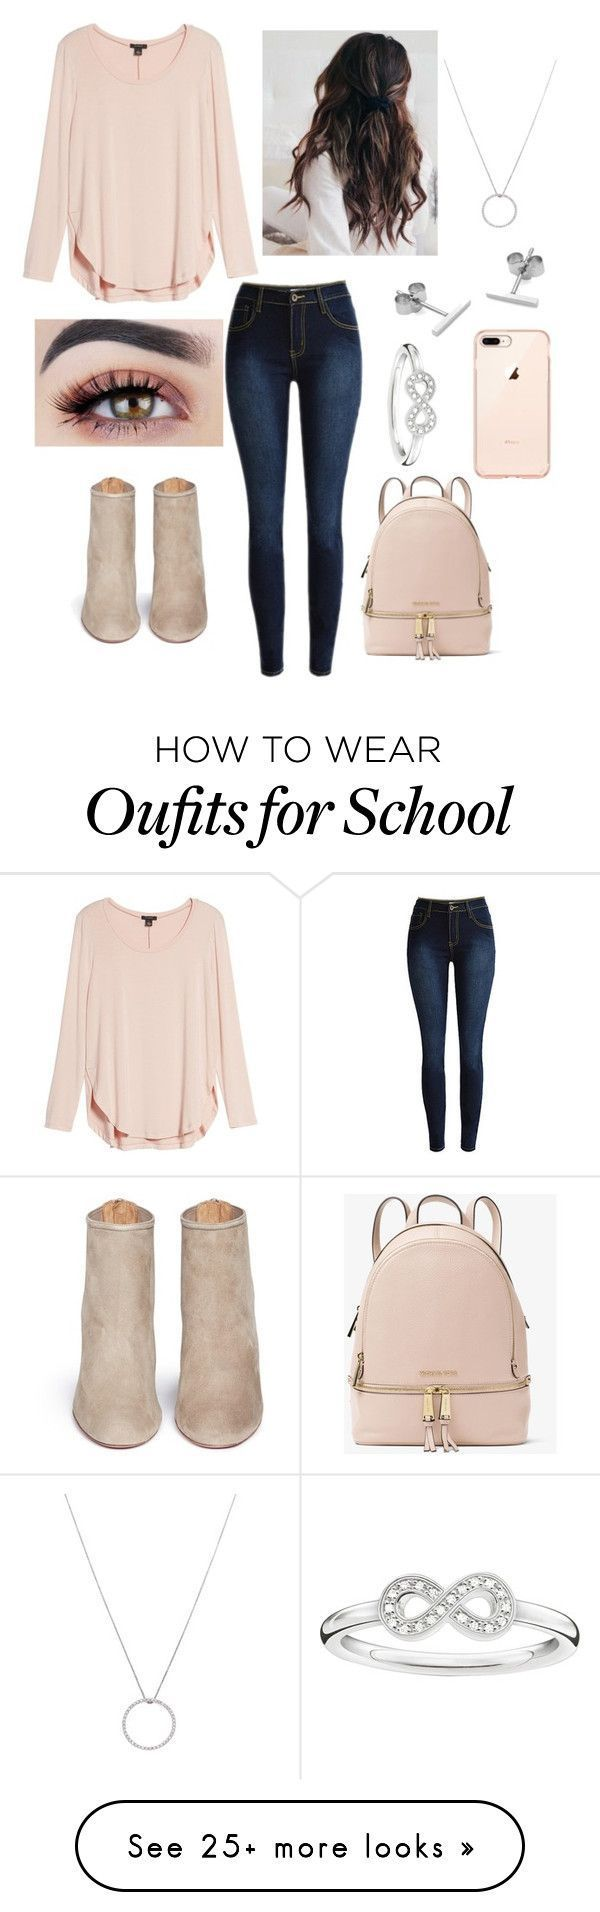 """School outfit"" on Polyvore featuring Halogen, Aquazzura, MICHAEL Michael Kors, Myia Bonner, Roberto Coin and Thomas Sabo #polyvoreoutfits #schooloutfits"